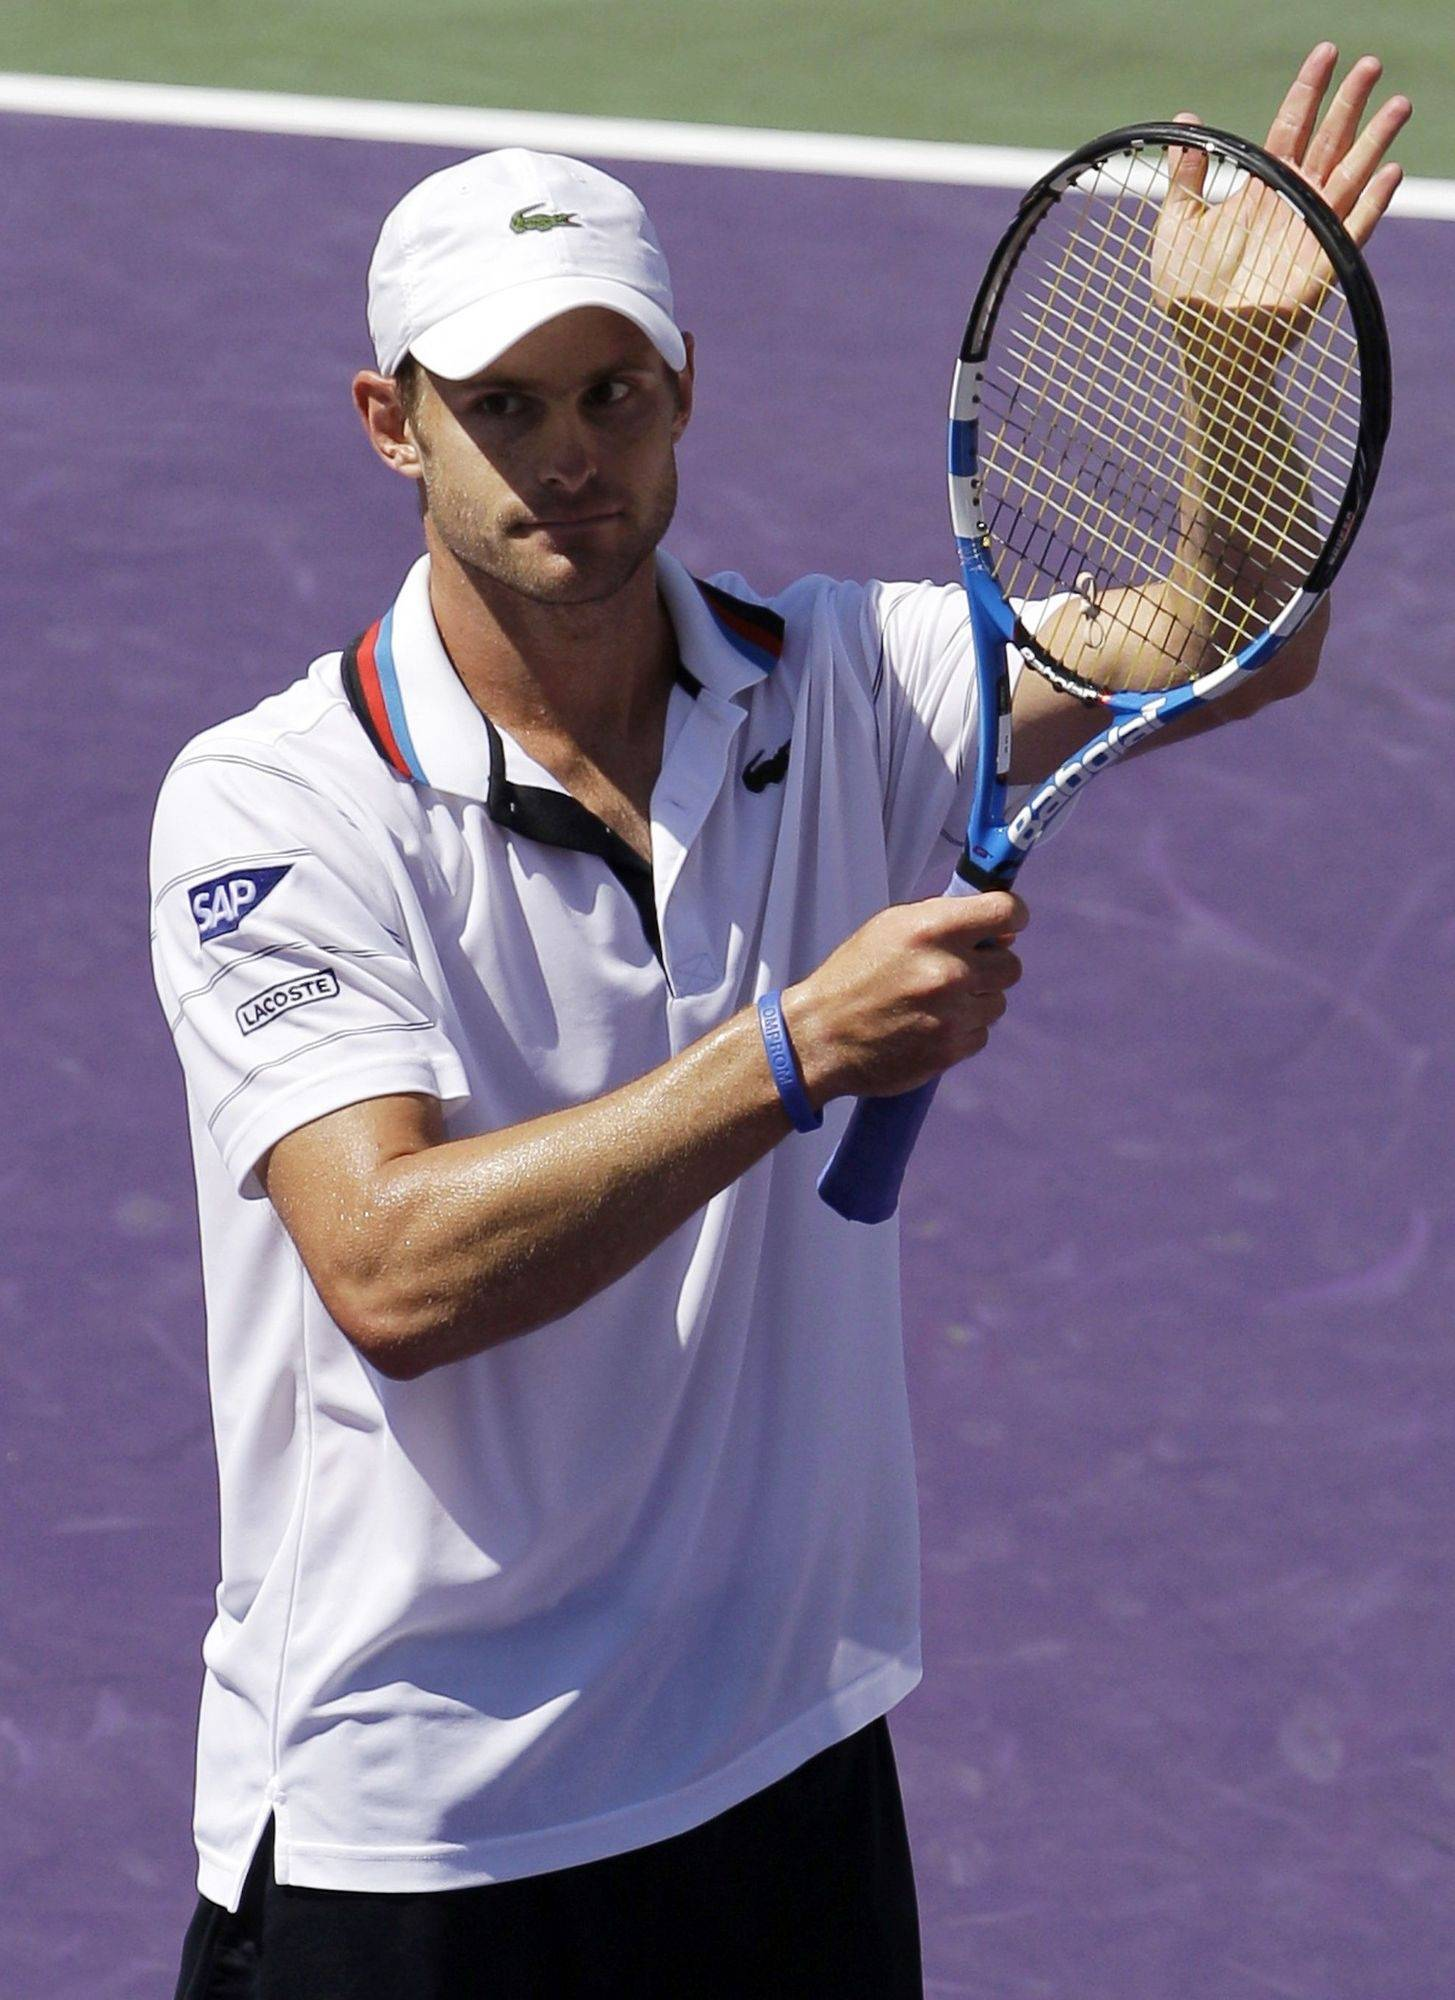 Andy Roddick celebrates after defeating Rafael Nadal 4-6, 6-3, 6-3, in a semifinal match at the Sony Ericsson Open.